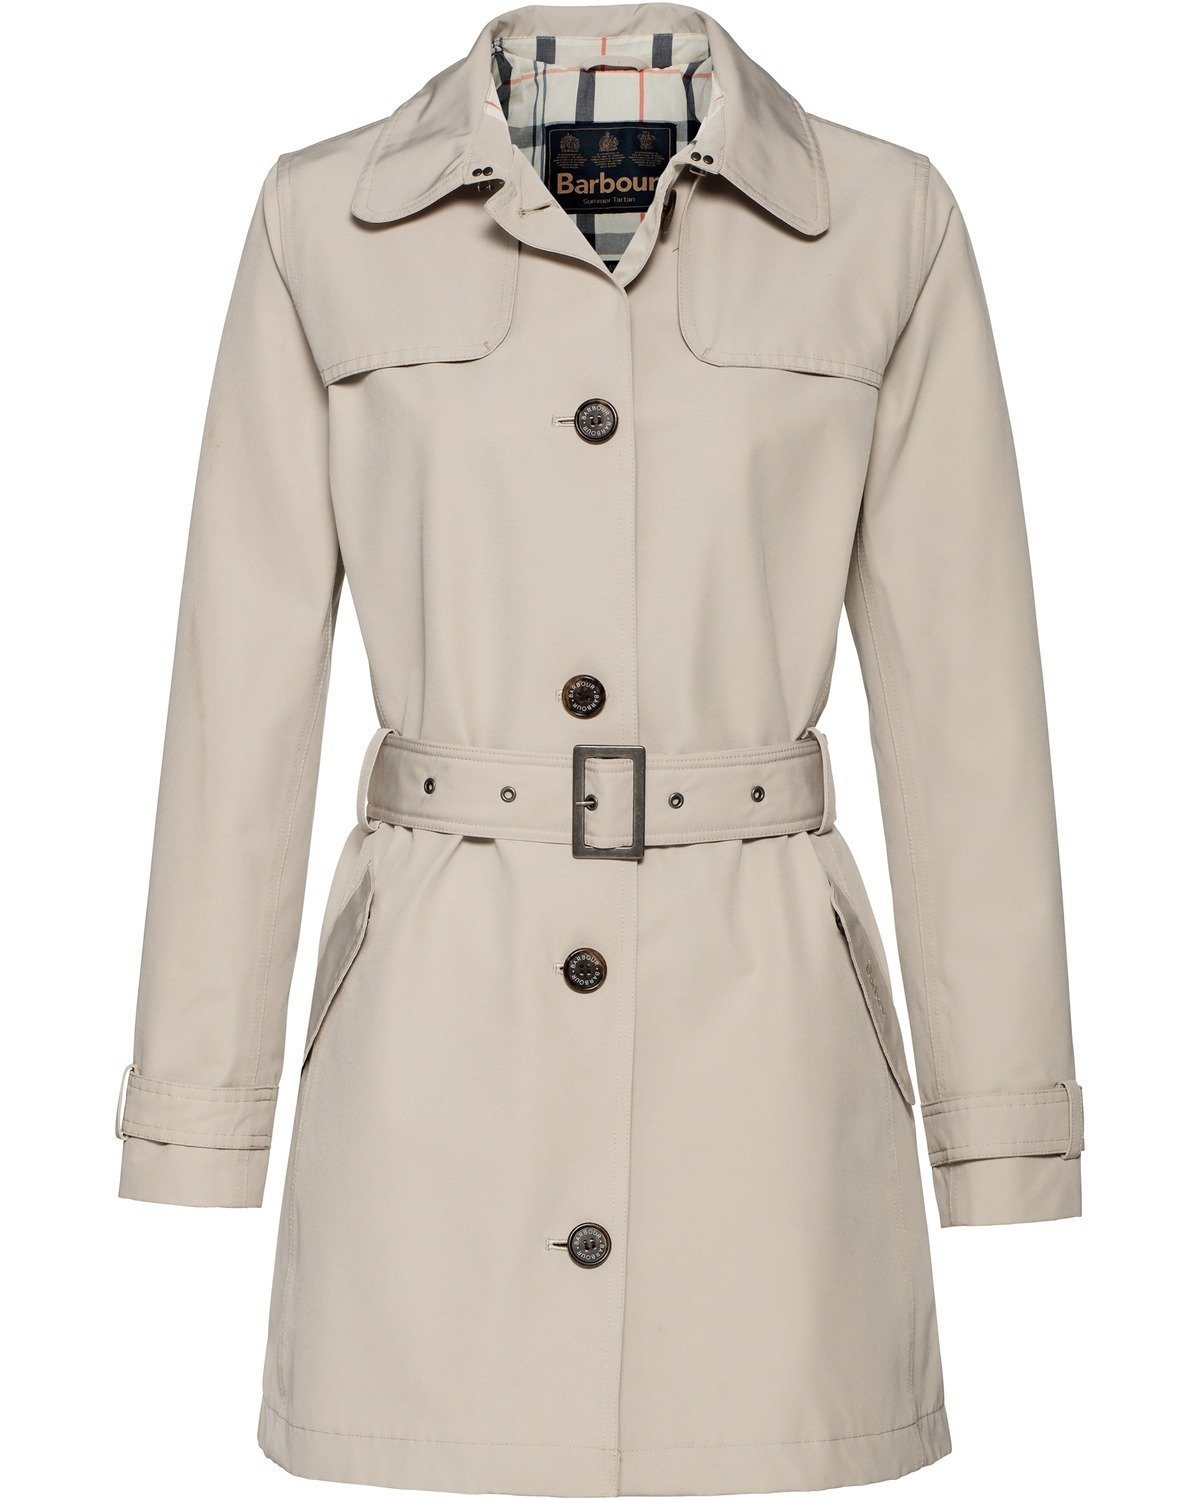 Barbour Trenchcoat Thornhill | Bekleidung > Mäntel > Trenchcoats | Muster | Baumwolle | Barbour